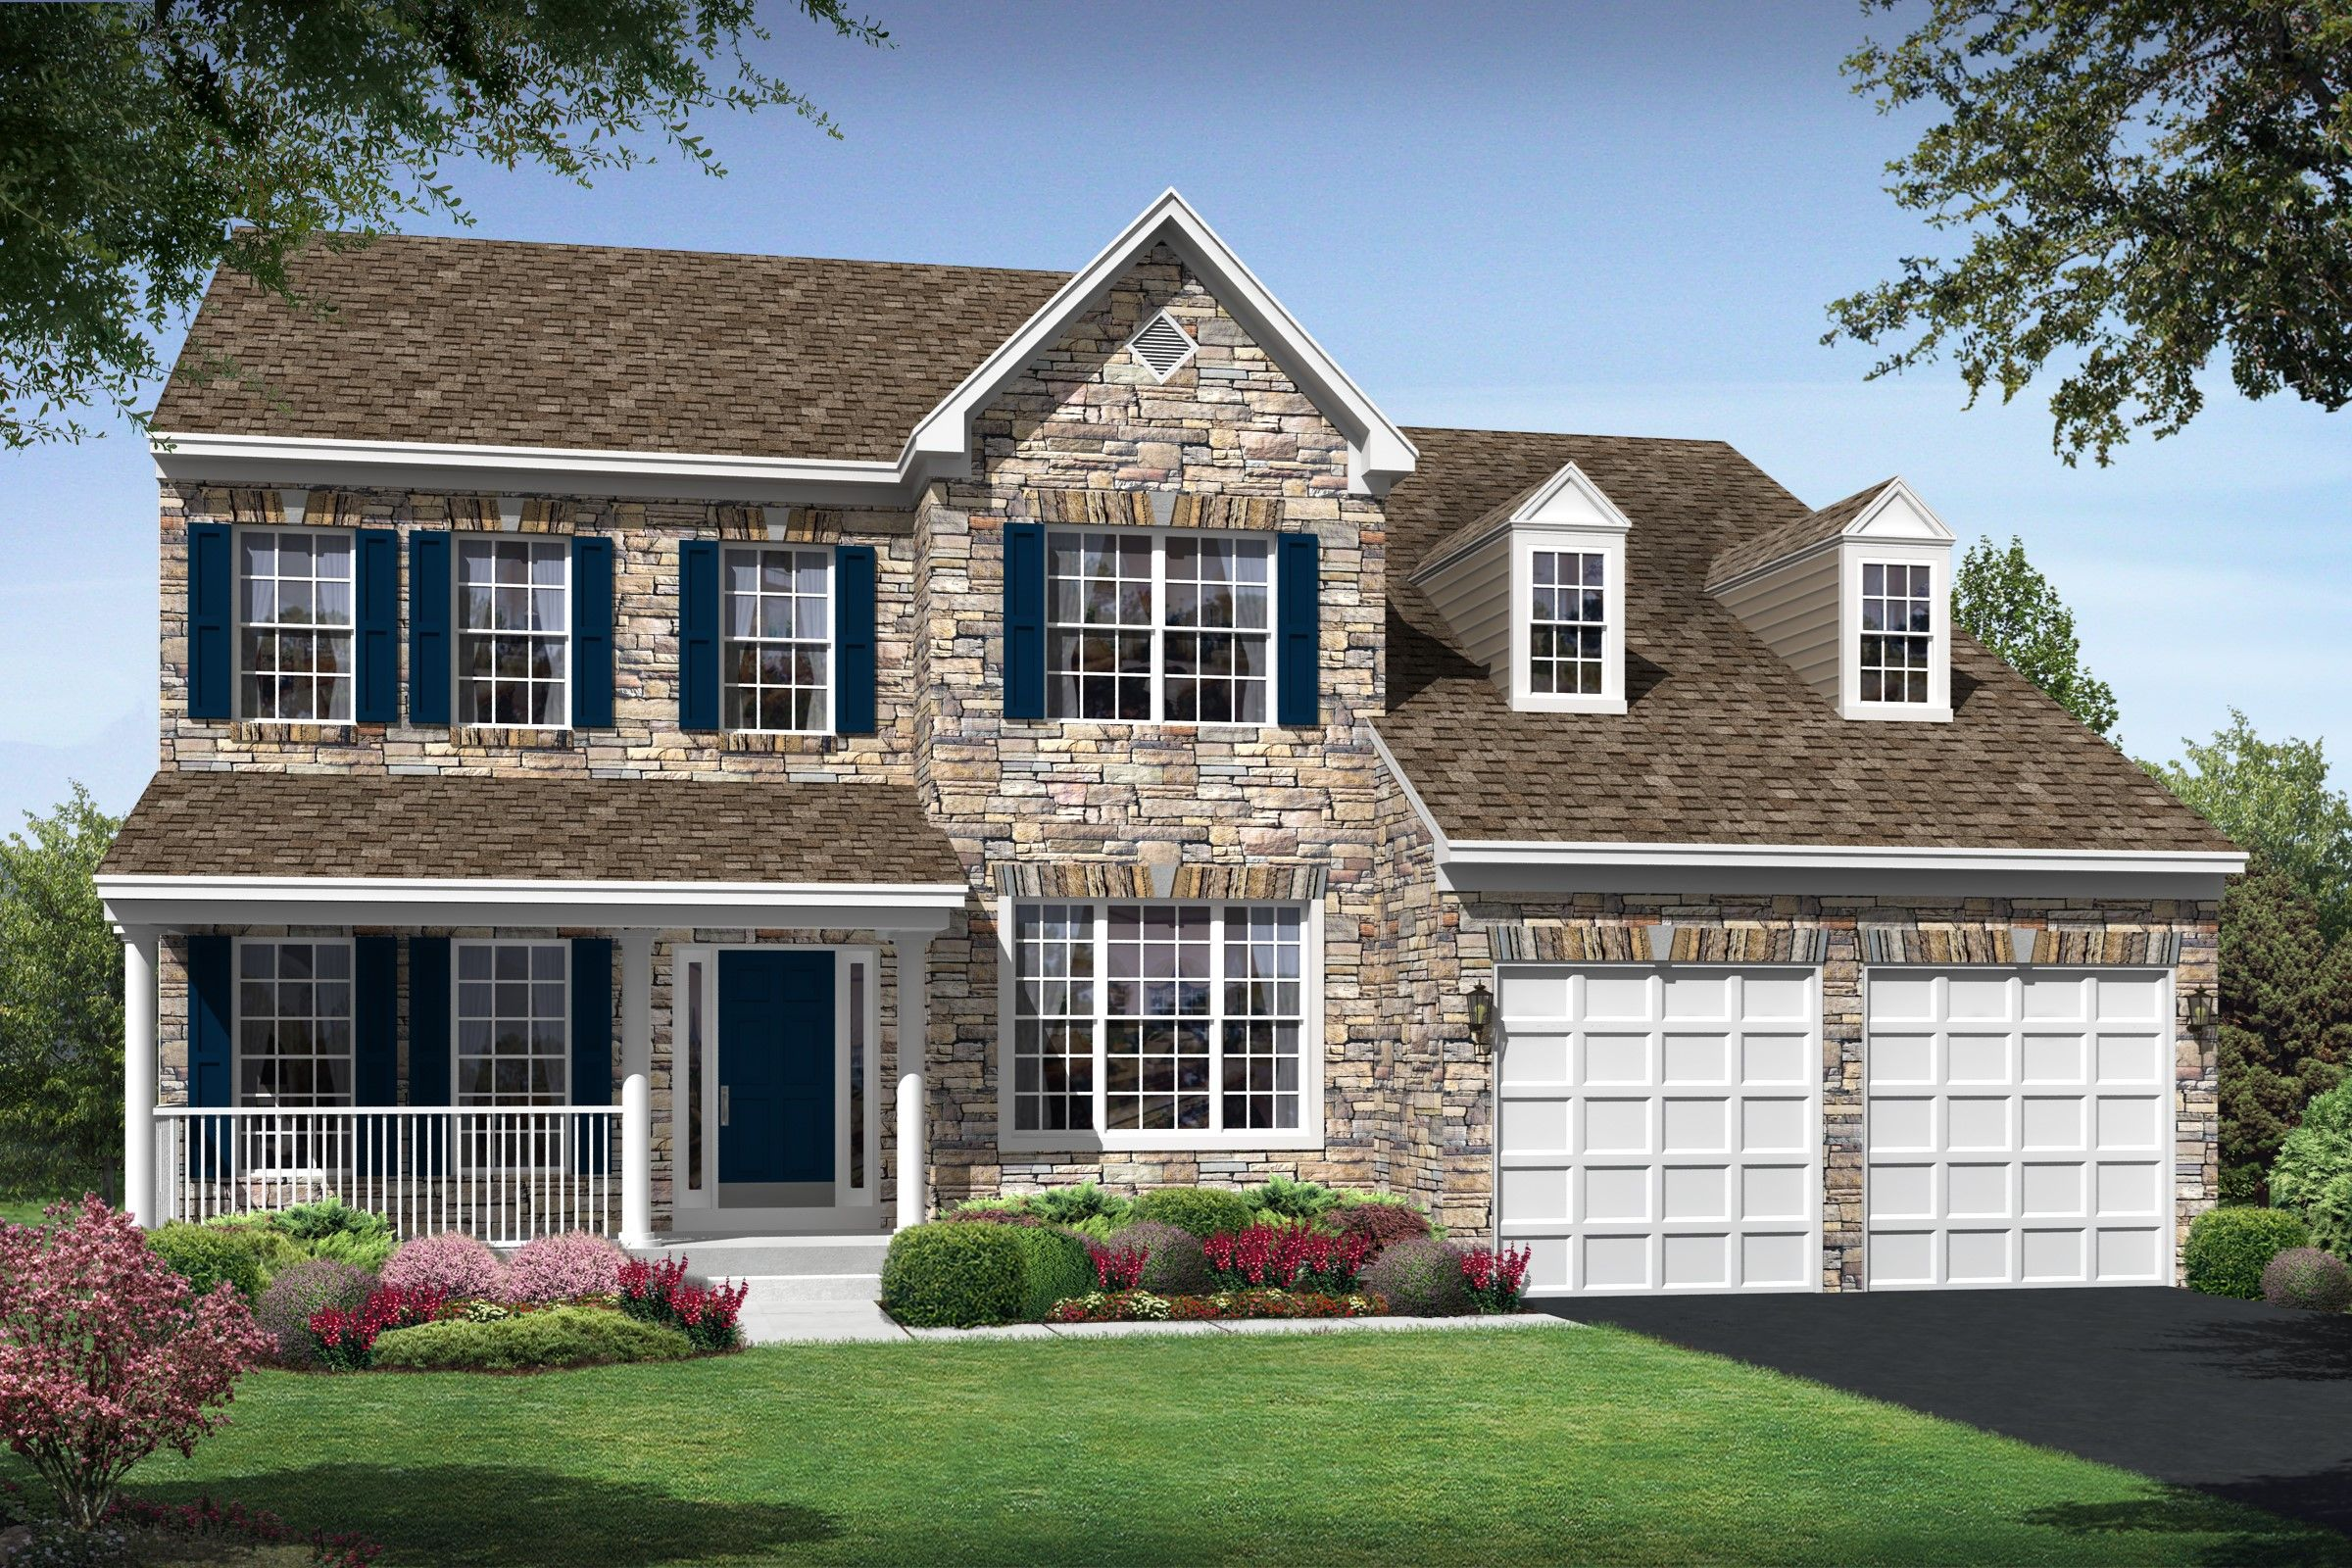 K hovnanian r homes canter estates berry hill 1168011 for Modern homes for sale in virginia